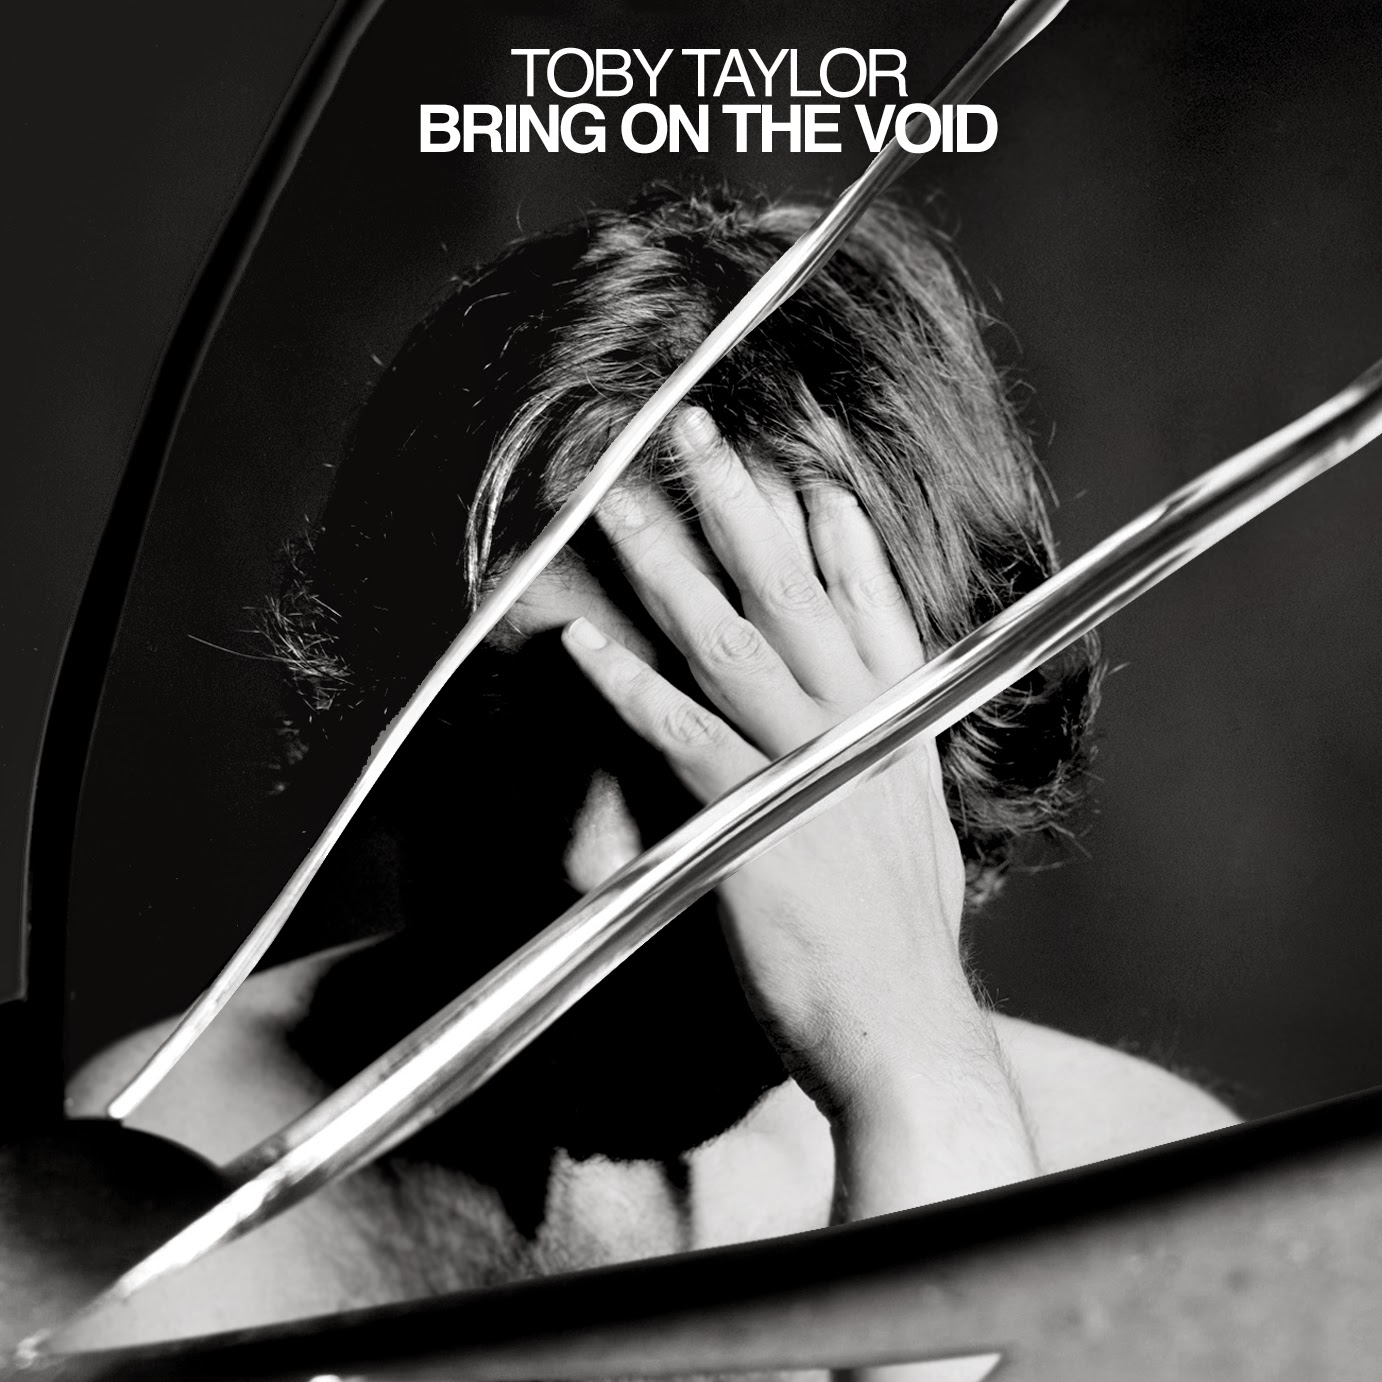 Portada Toby Taylor Bring on the void